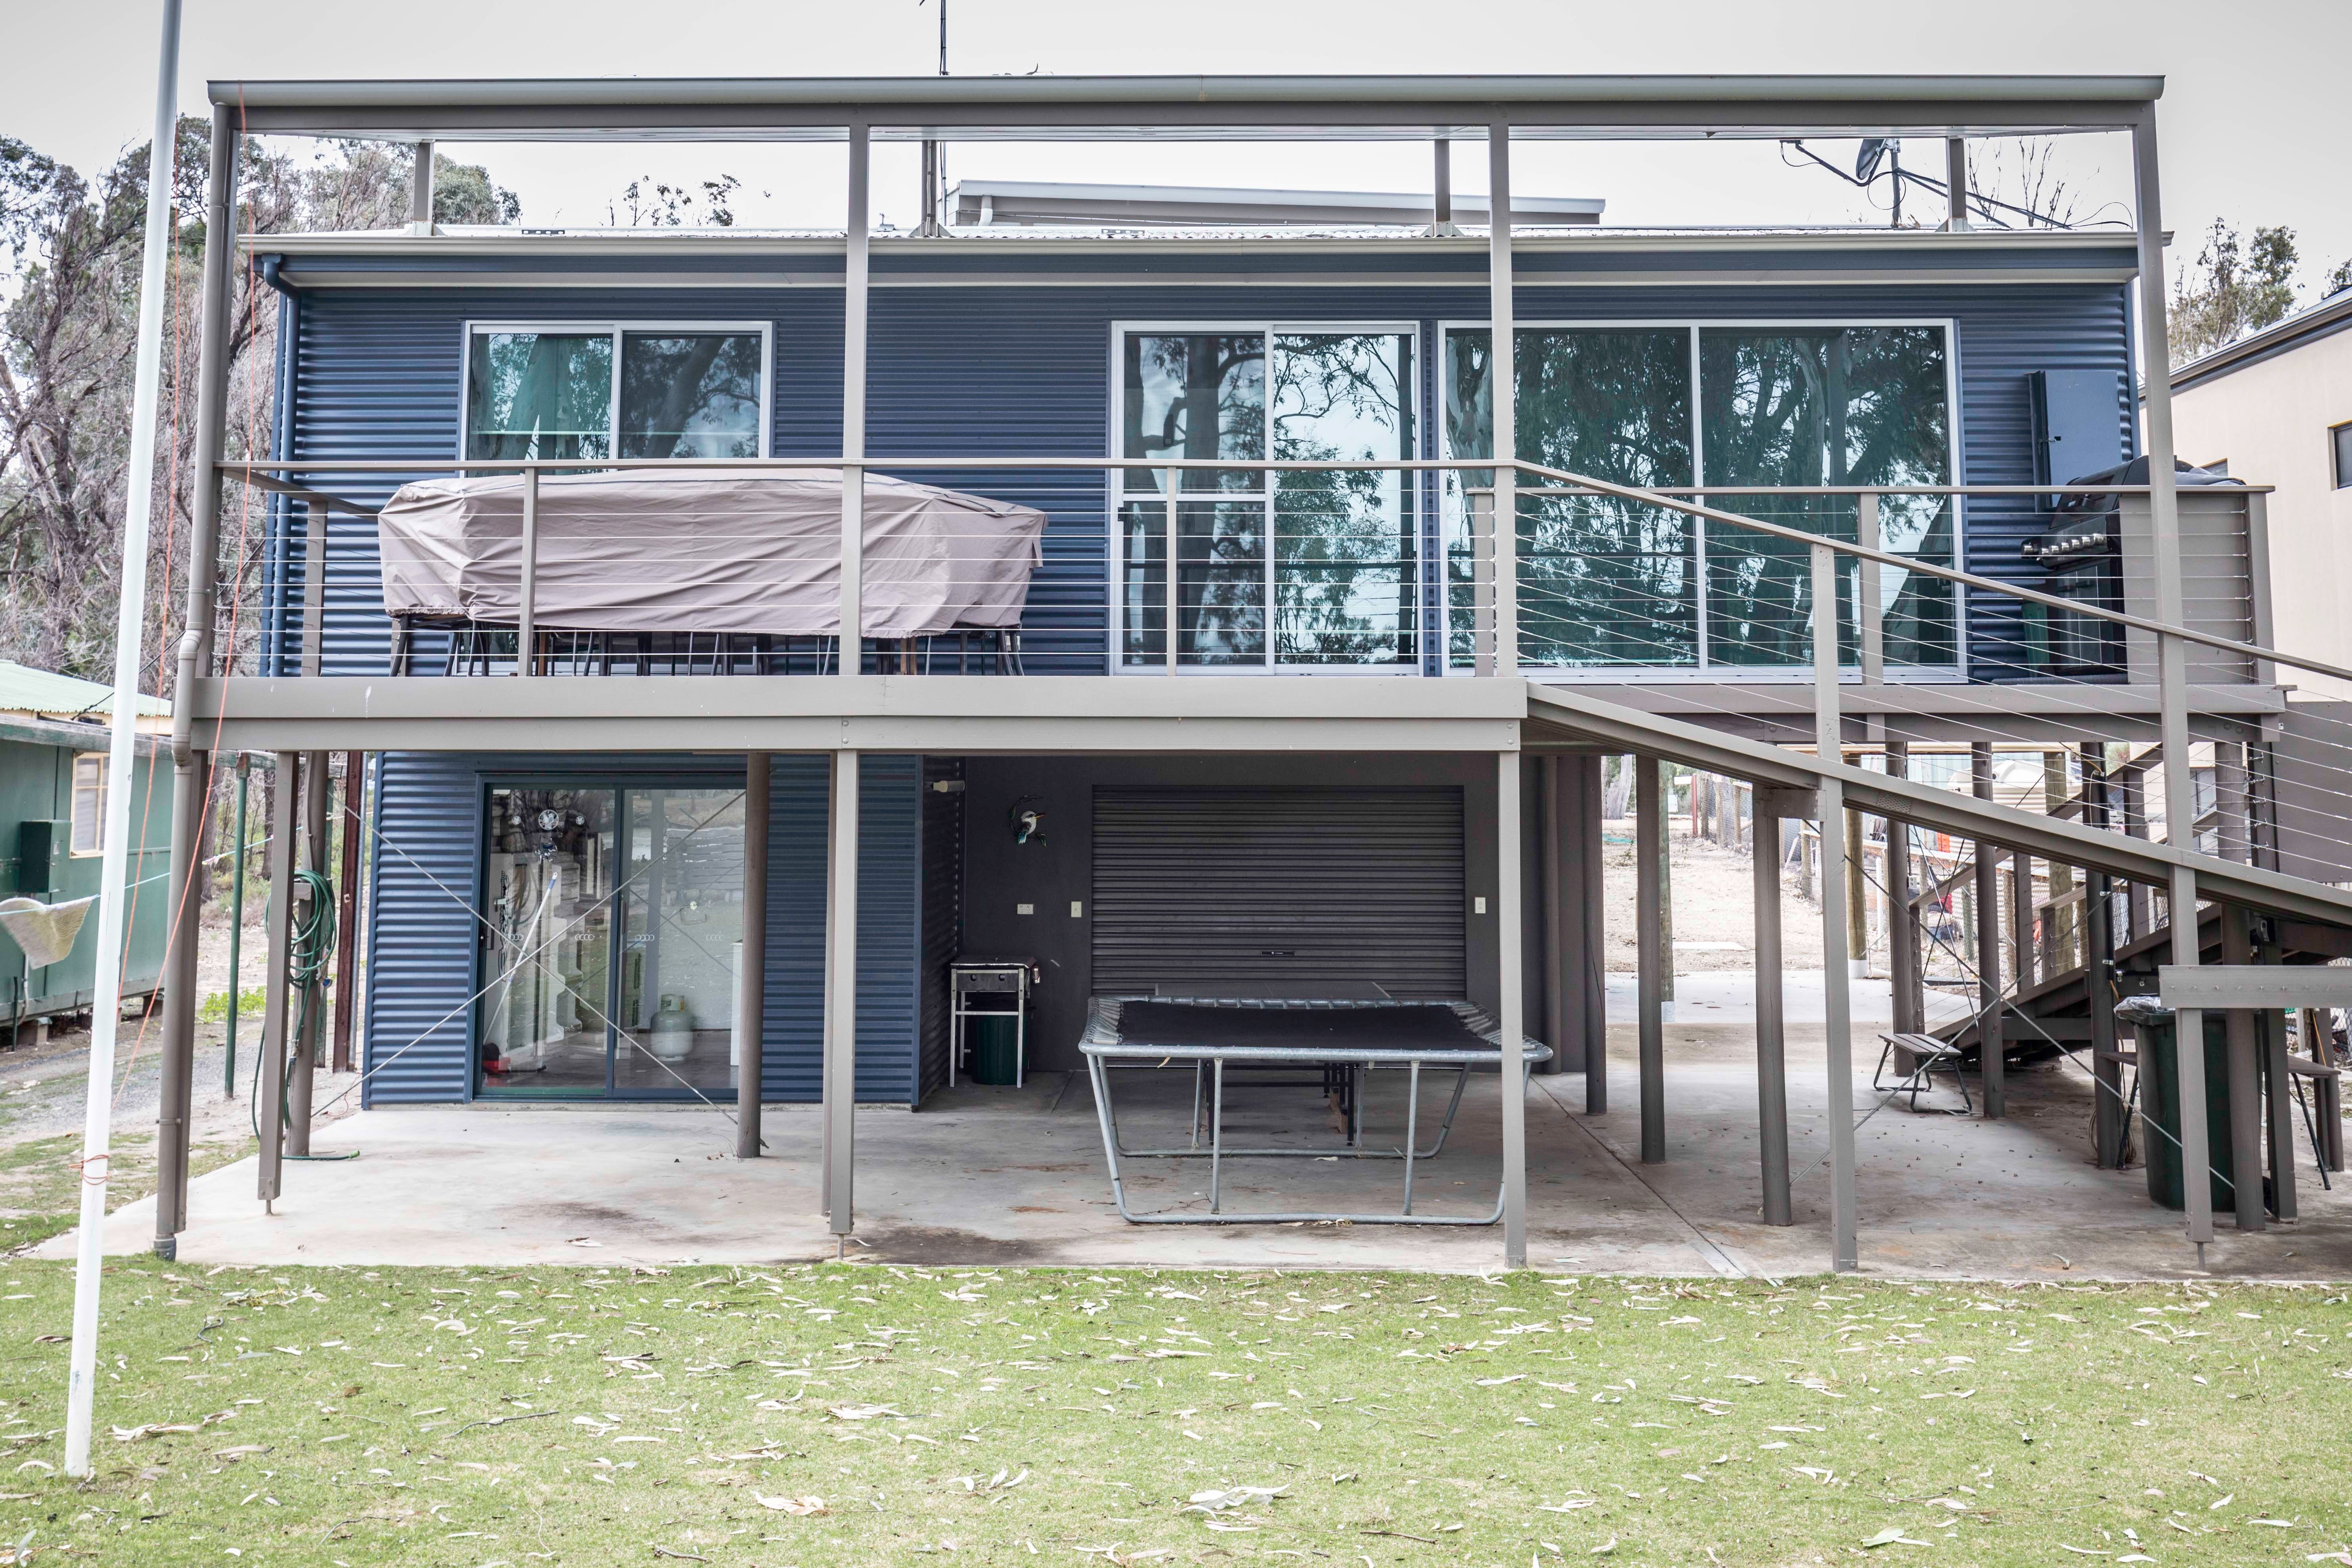 Echidna Drive Idyll Acres - Accommodation in Surfers Paradise